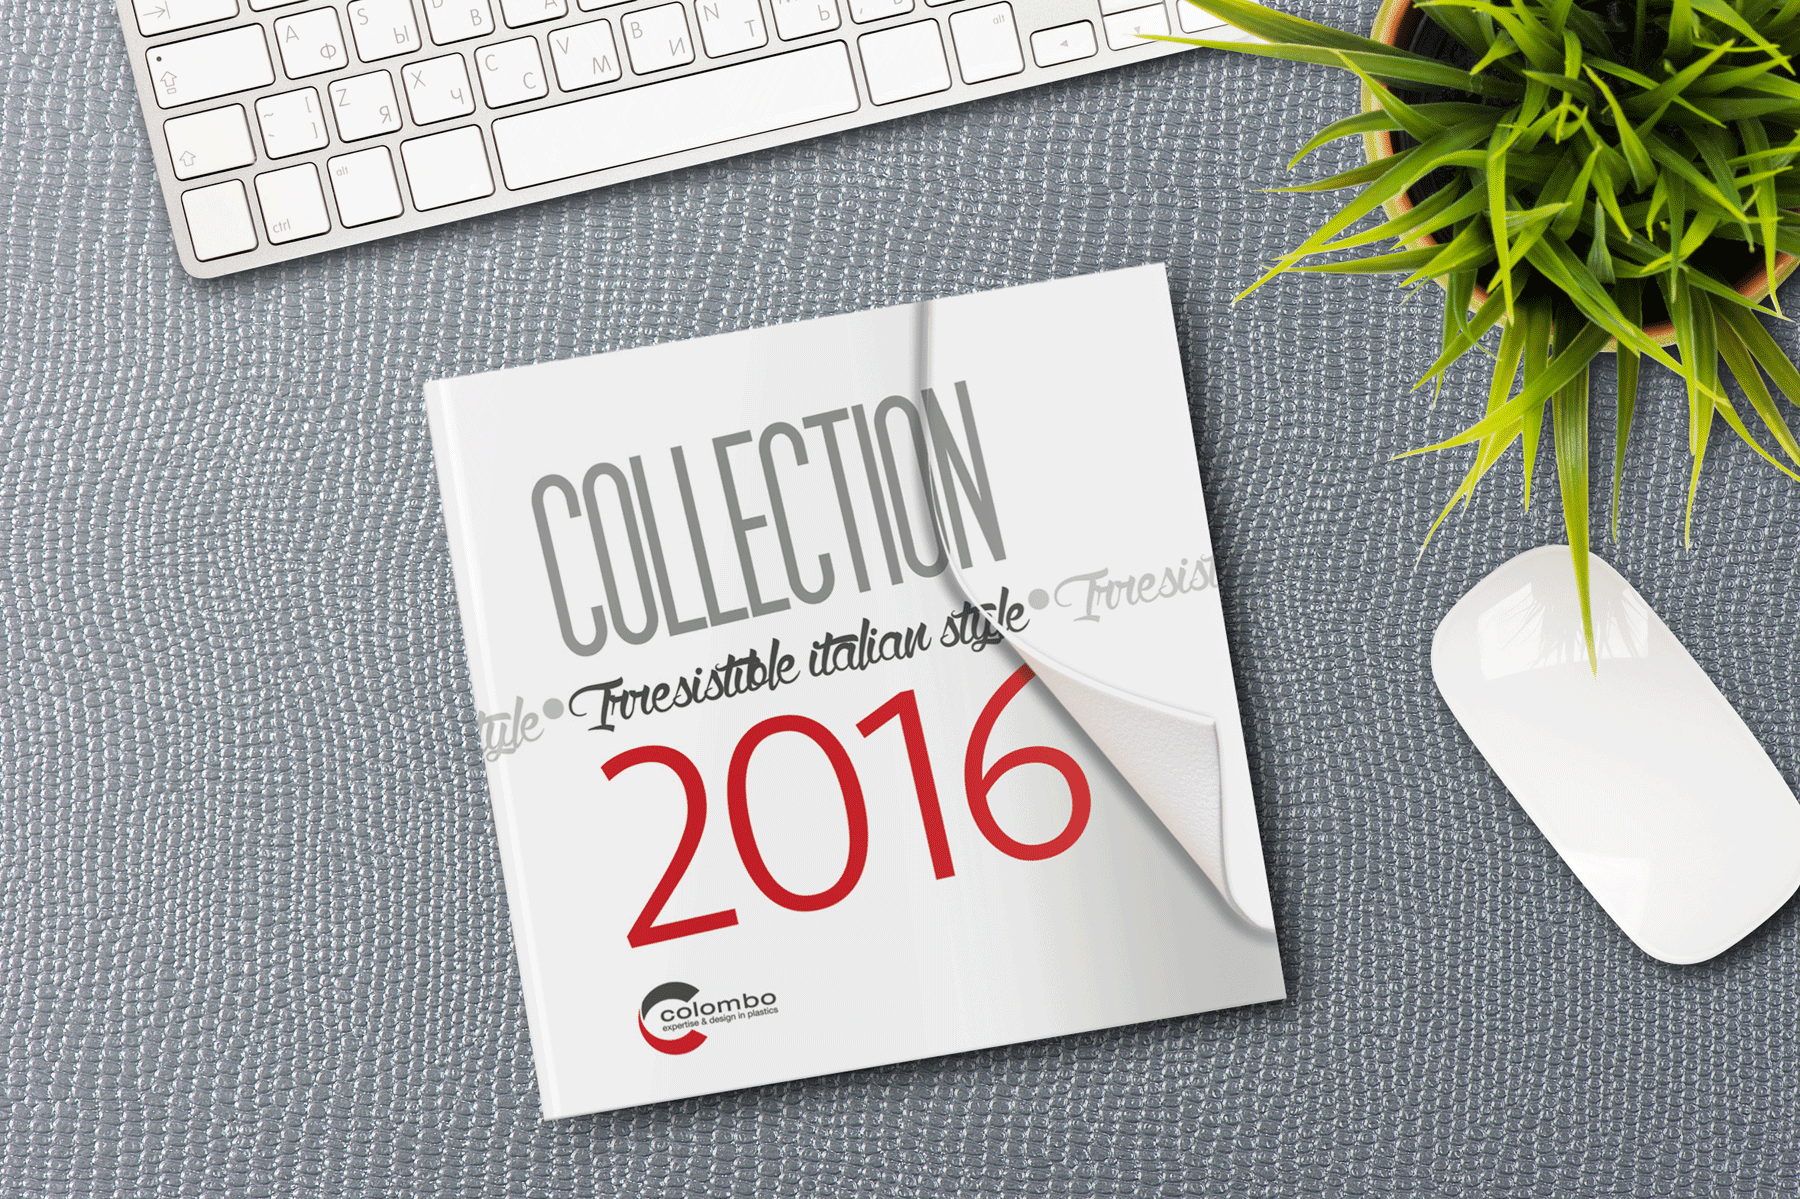 Catalogo-2016_slider